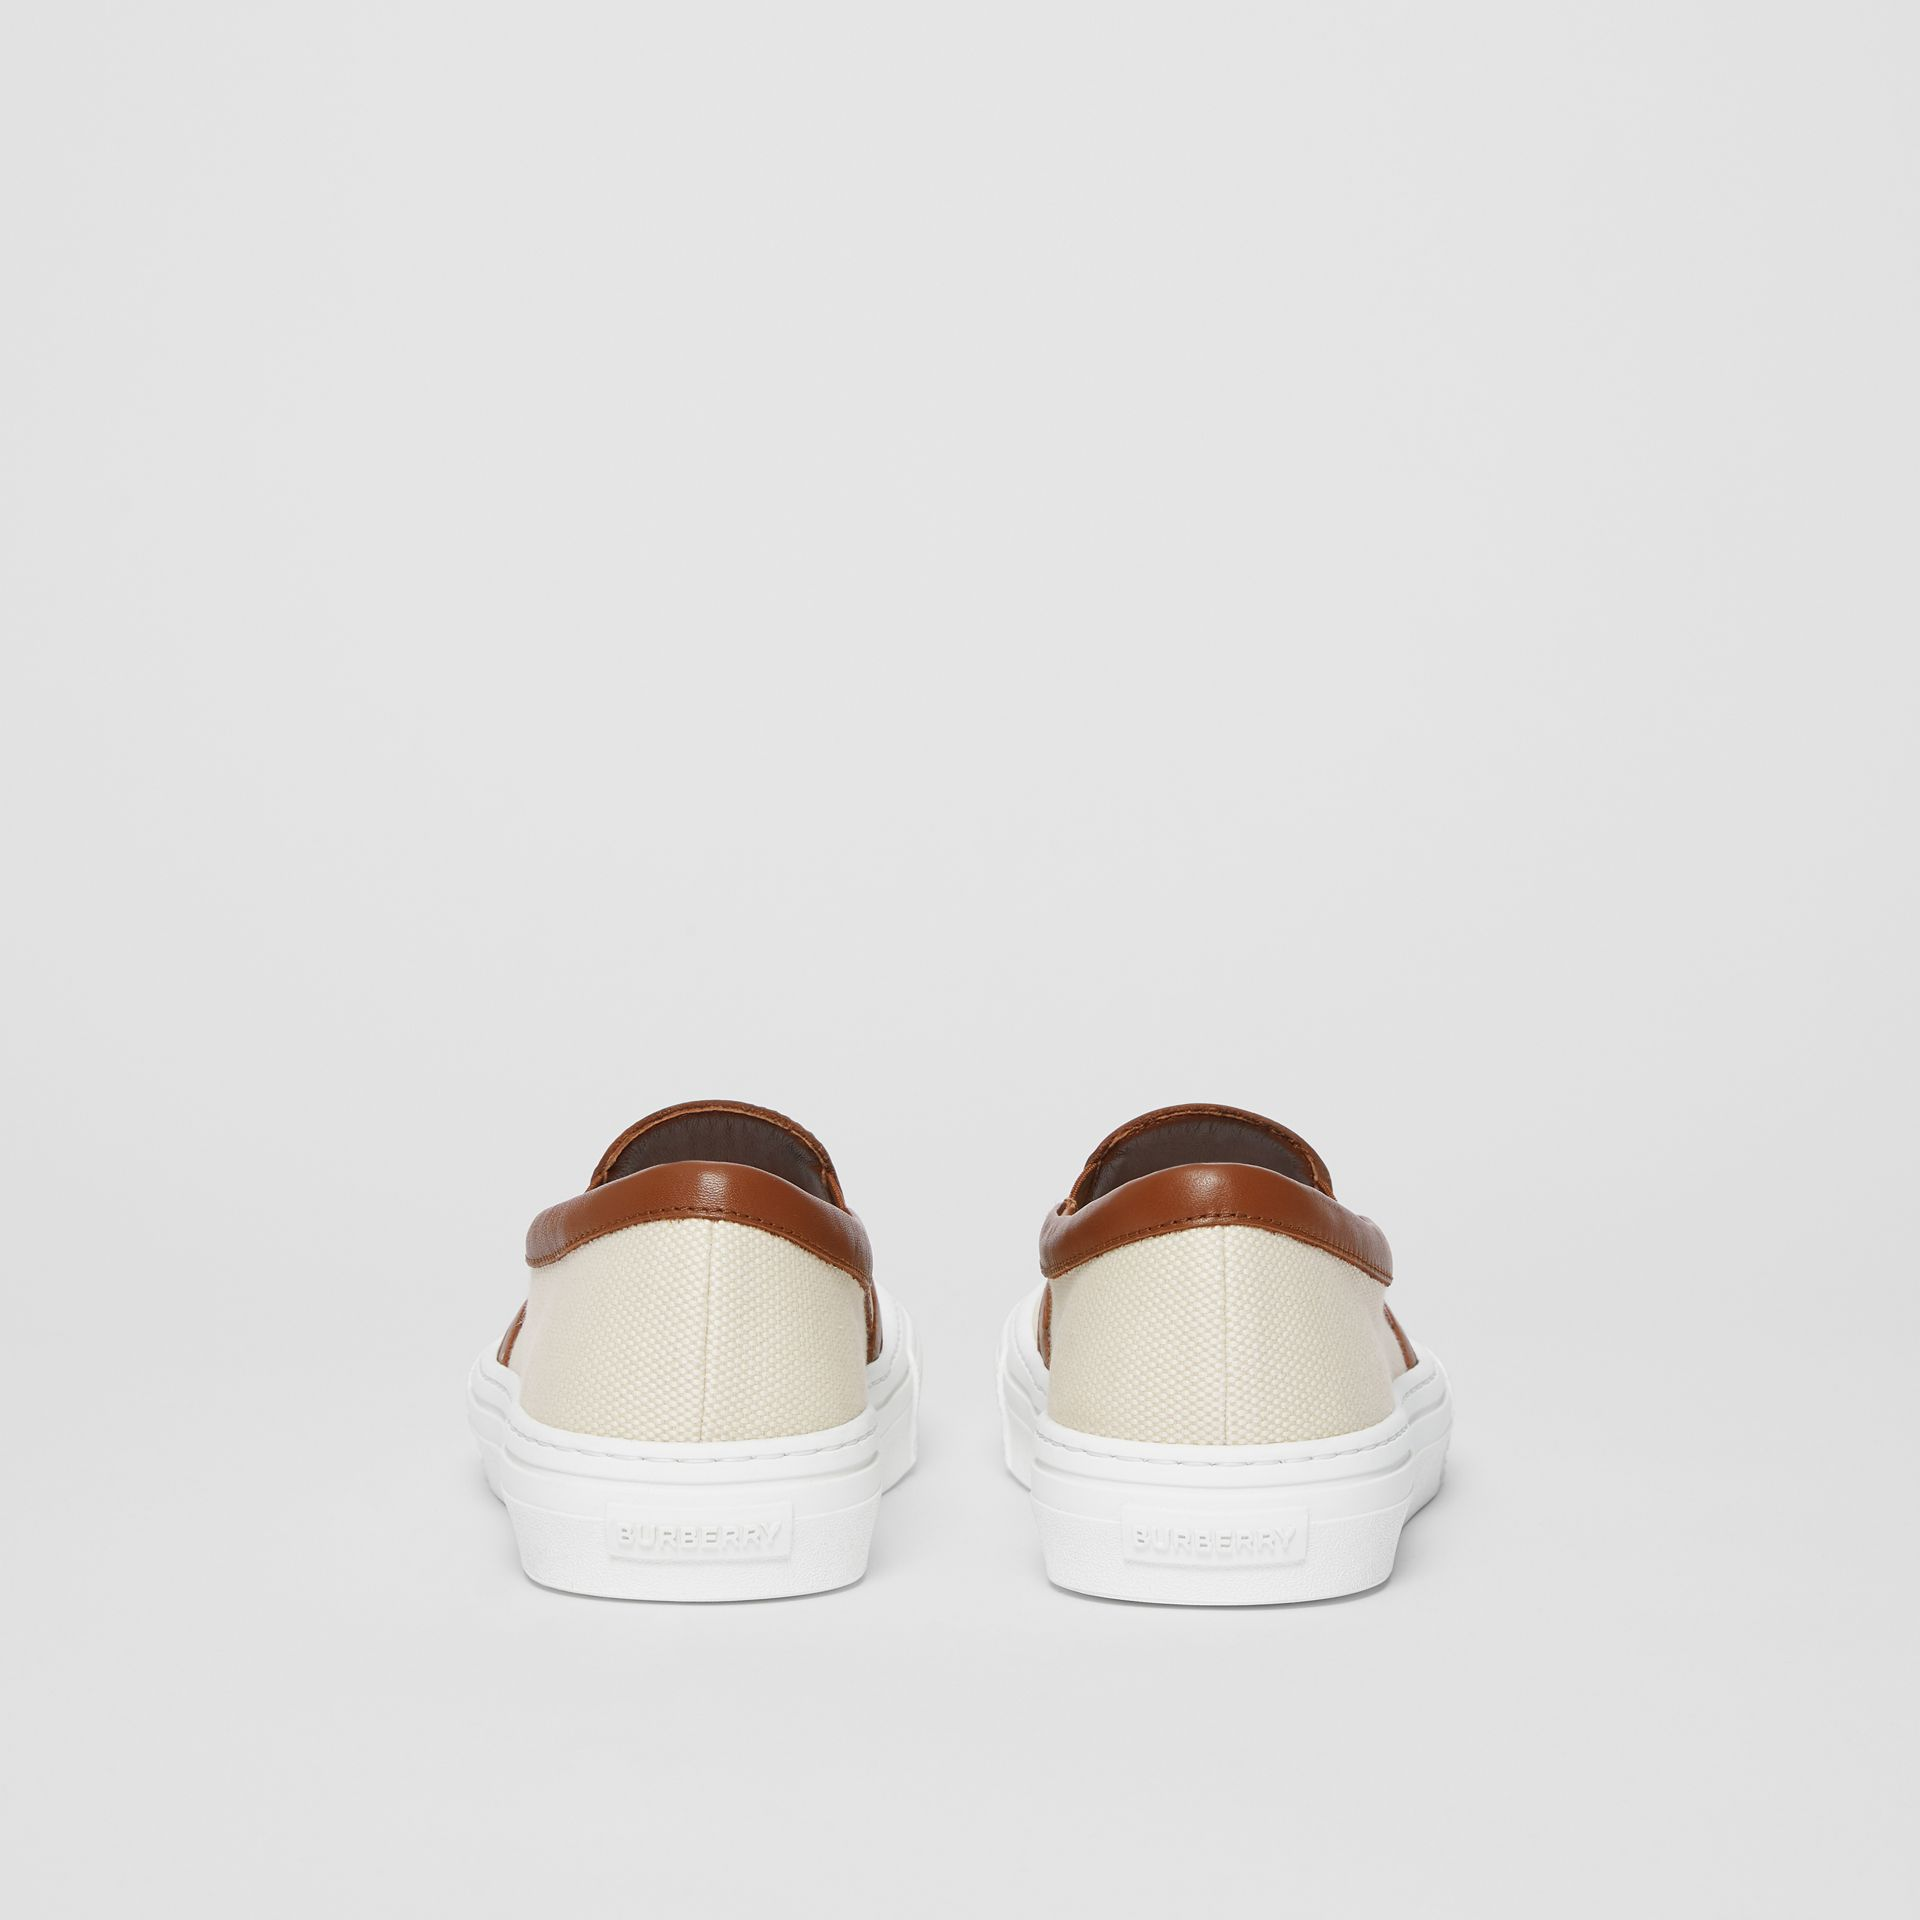 Sneakers sans lacets en coton et cuir Horseferry (Brun Malt) - Femme | Burberry - photo de la galerie 3